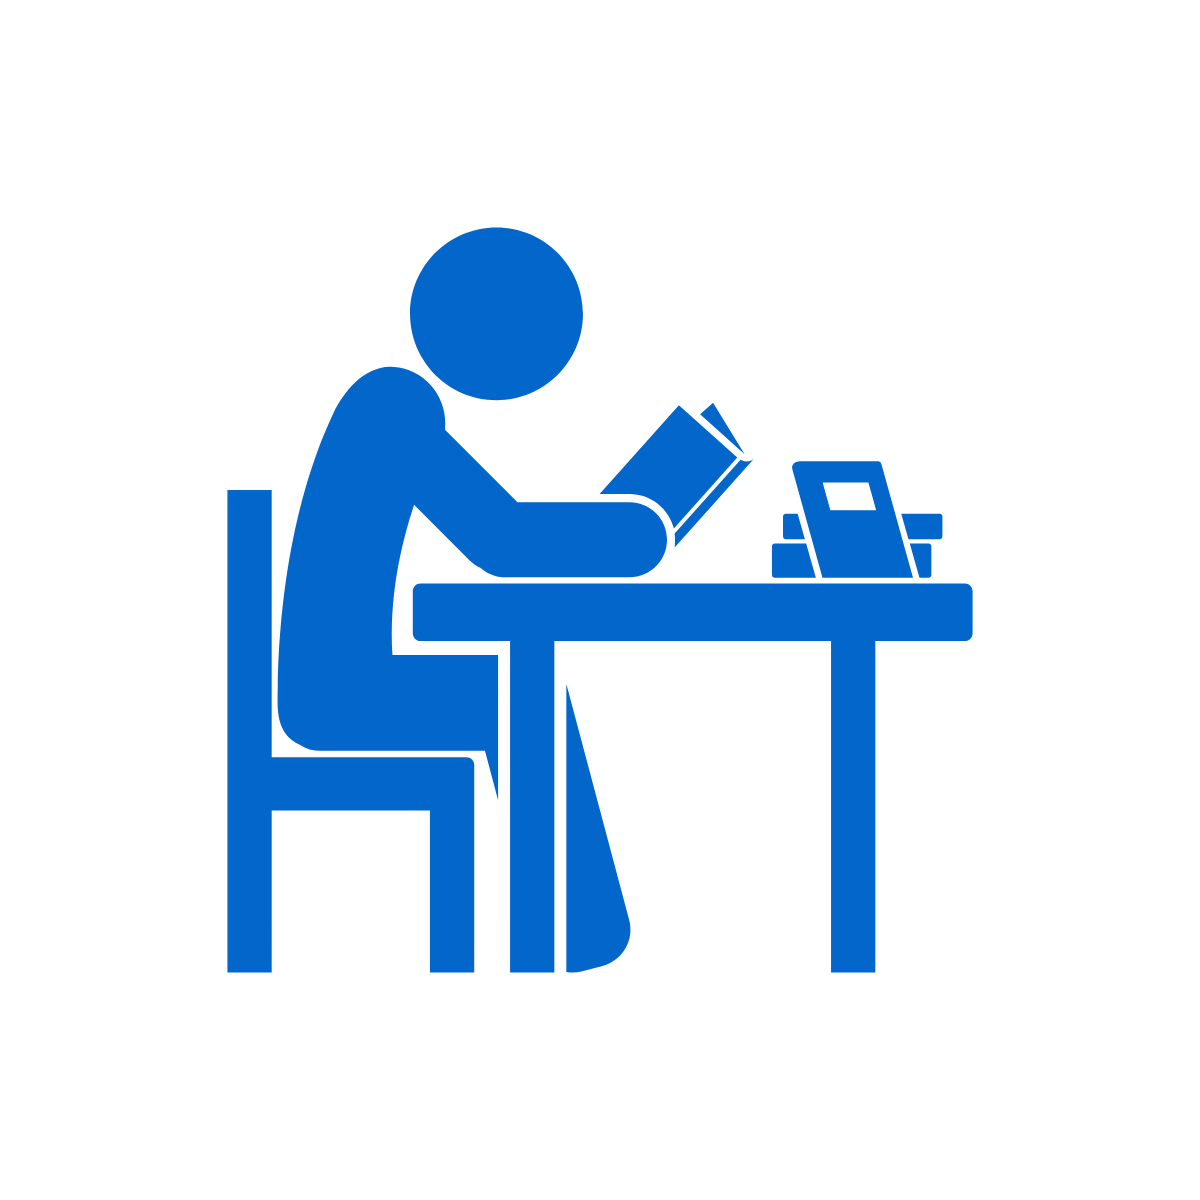 line drawing of a person reading a book at a desk